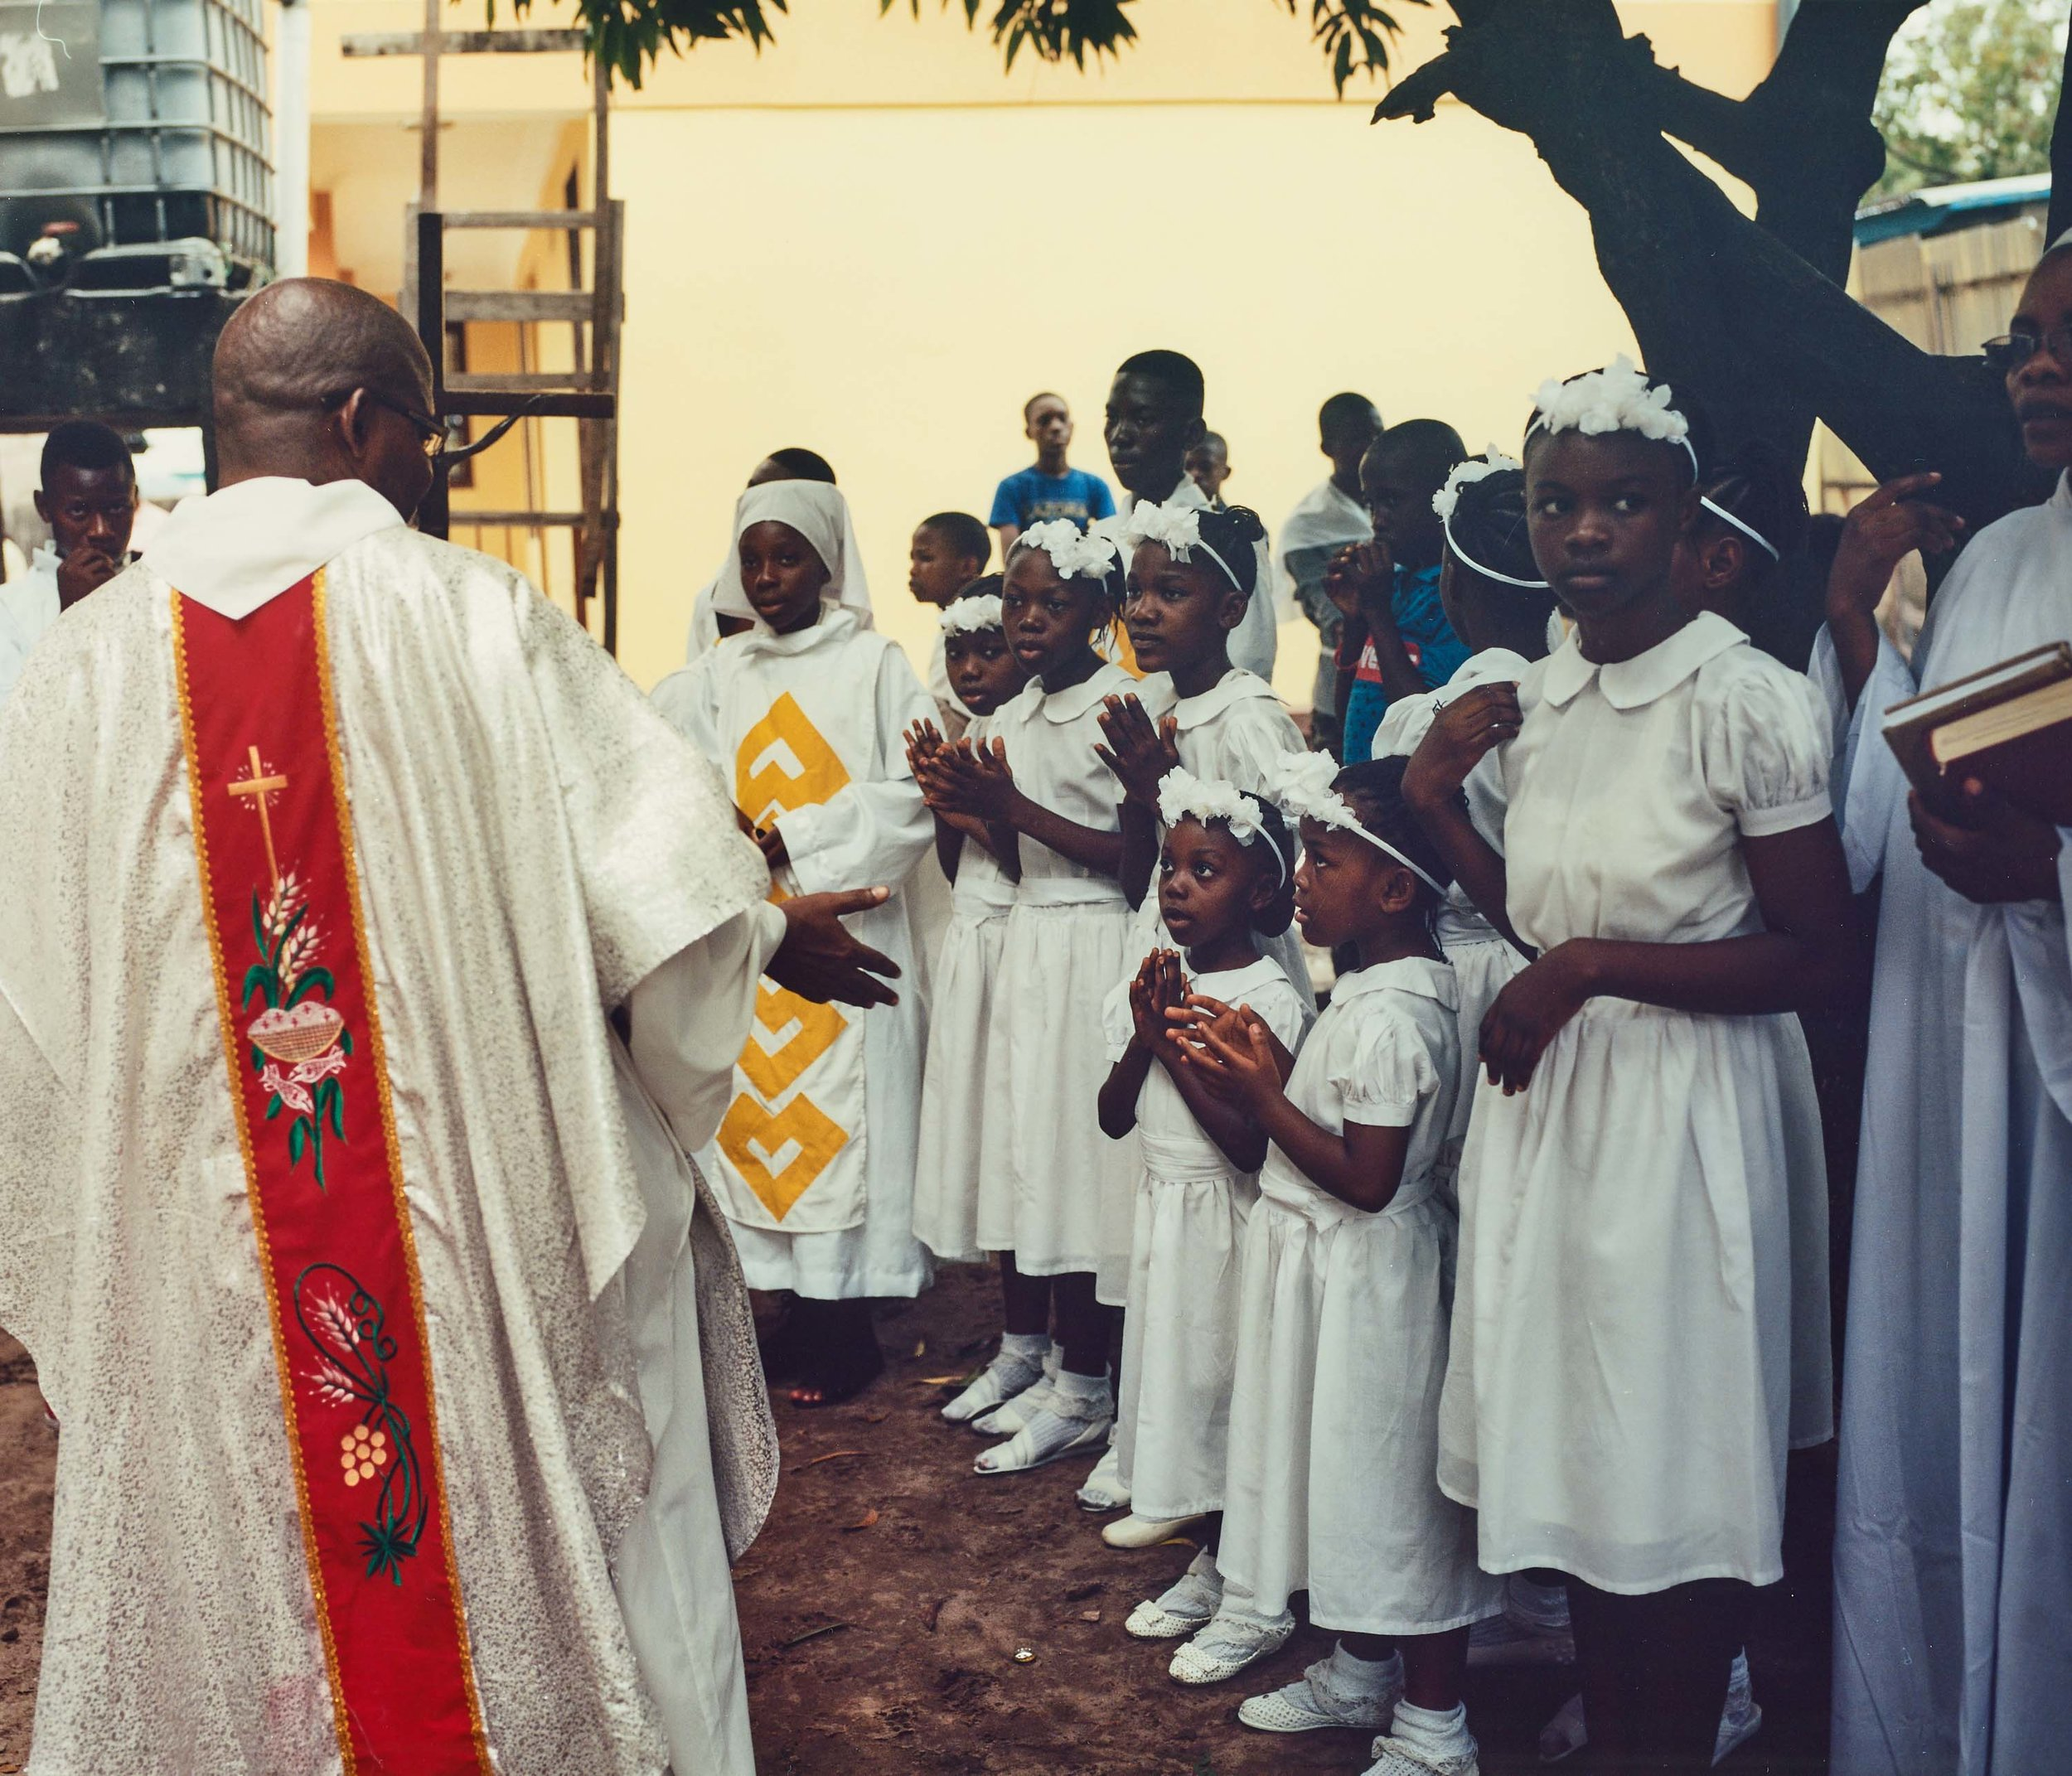 Alarmed at the dire condition of life for their congregations, the priests of Congo have attempted to broker elections with the brutal regime. Many look to them and the rituals of the Church for guidance and assurance as Congo approaches a tipping point.